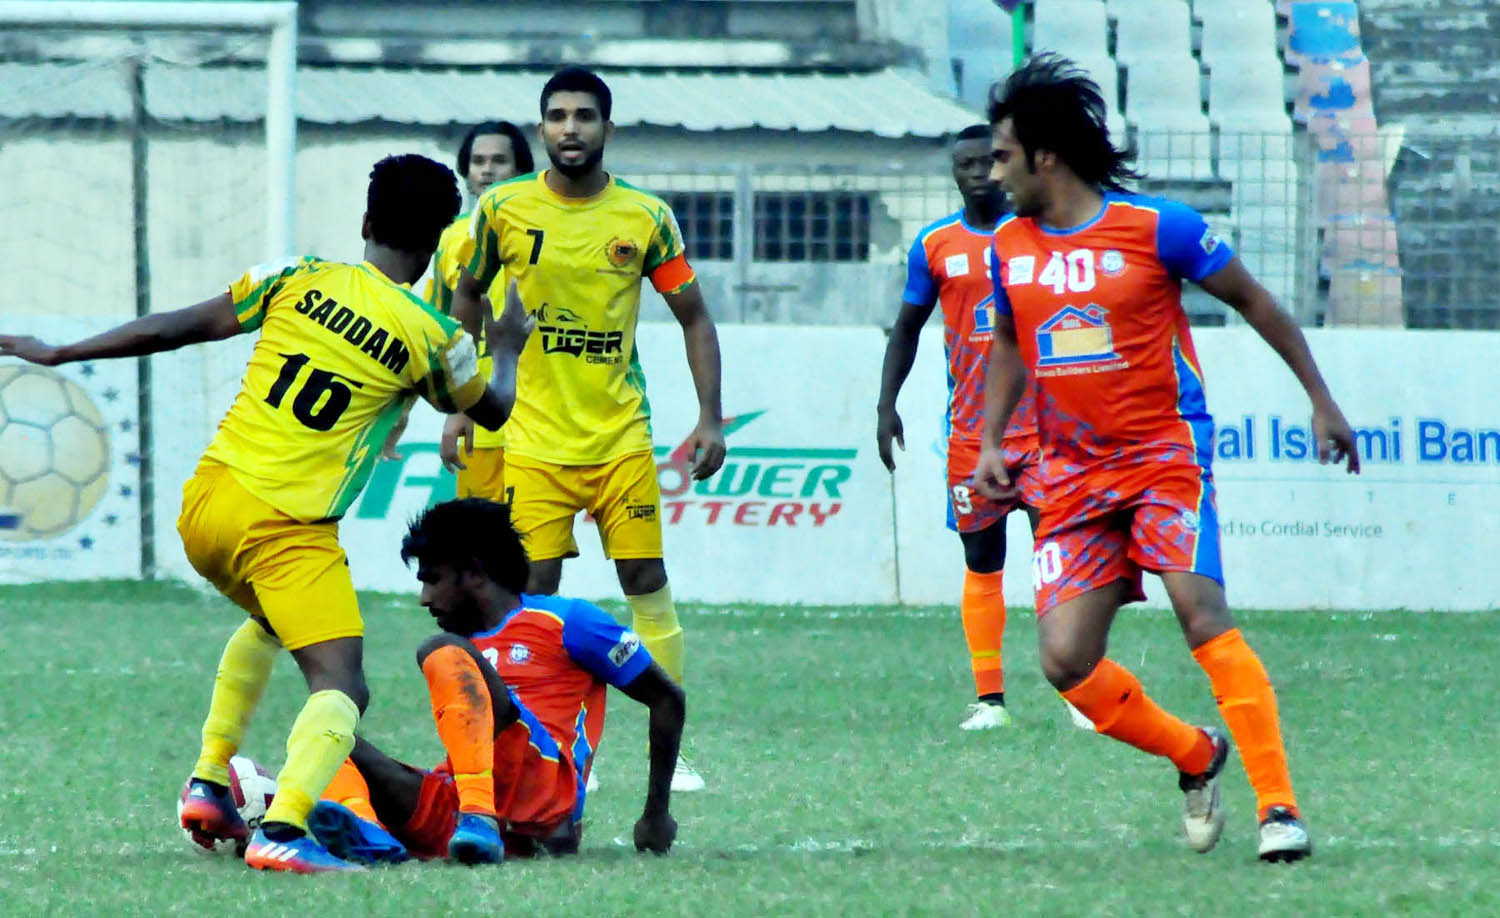 A view of the match of the Saif Power Battery Bangladesh Premier League Football between Brothers Union Limited and Rahmanganj MFS at the Bangabandhu National Stadium on Thursday. Brothers won the match 3-0.